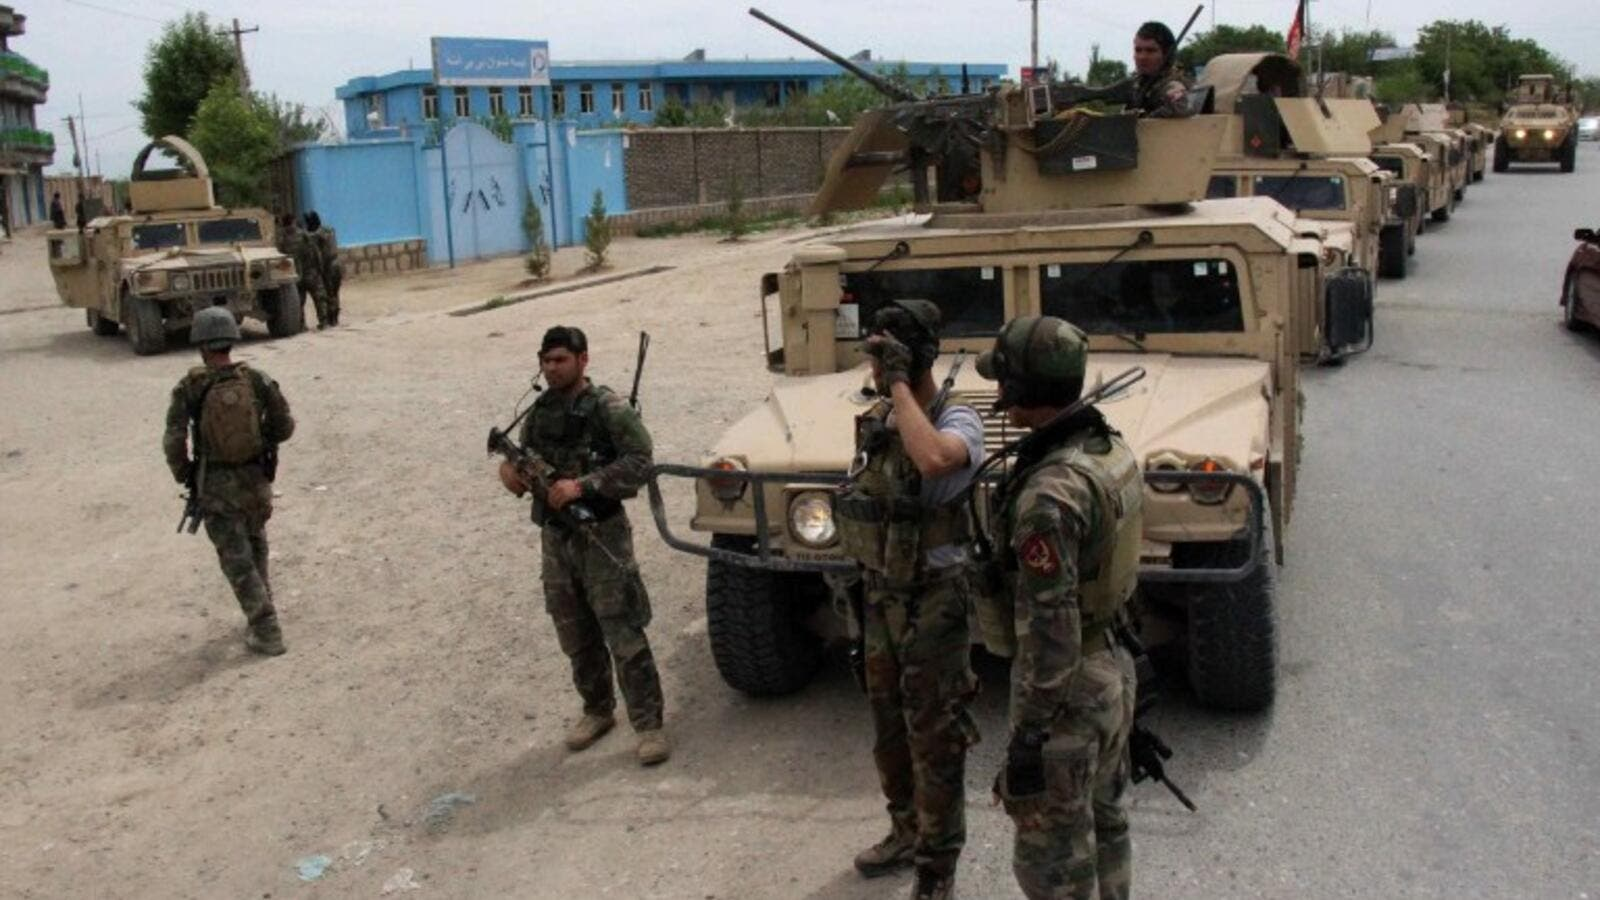 Afghan security forces in the Kunduz province, after a series of Taliban attacks. (AFP/File)